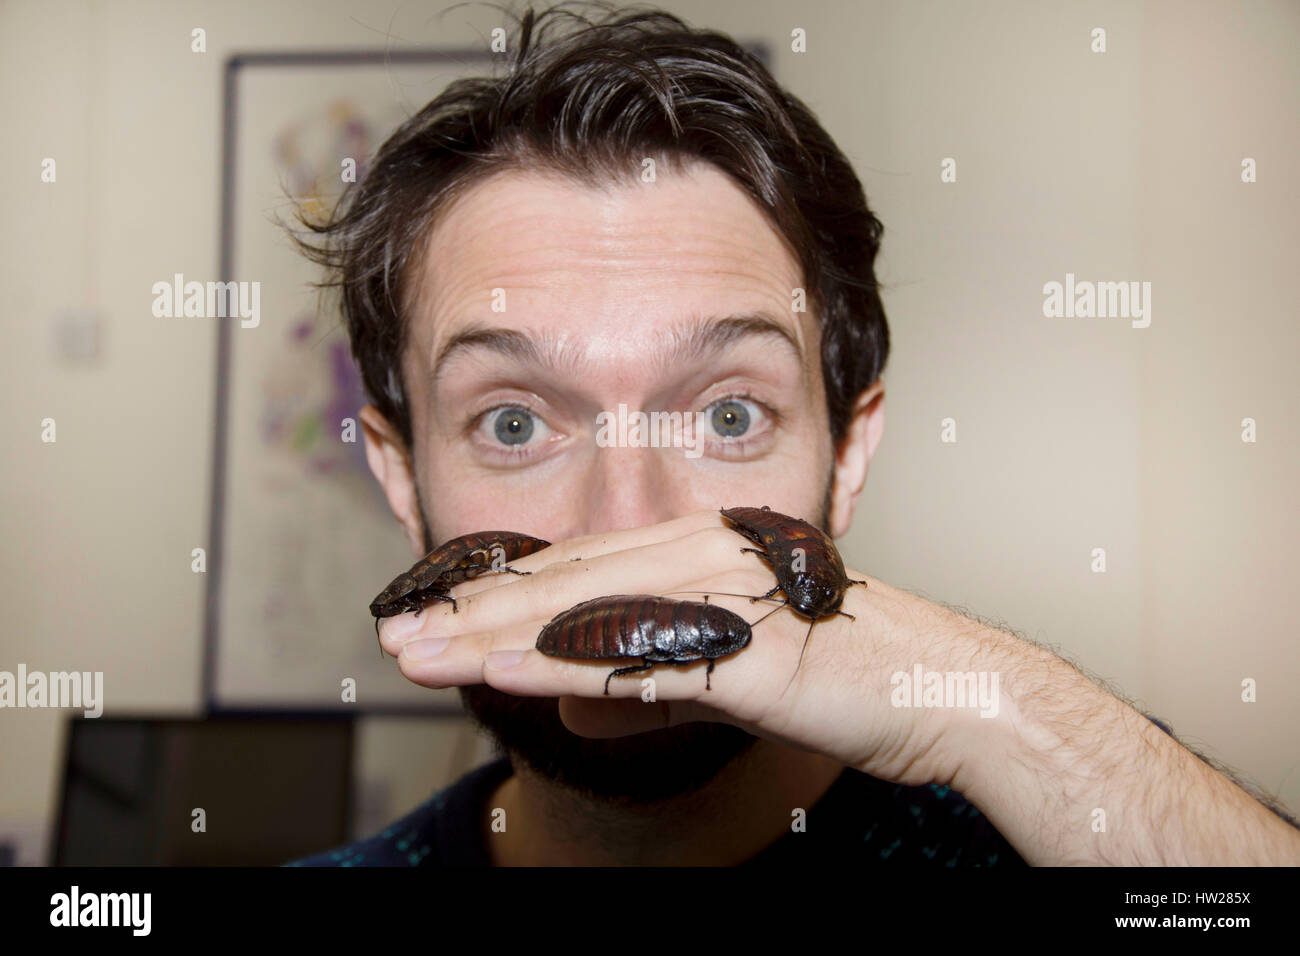 Wales, United Kingdom. January 26 2017.   Dr Tim Cockerill is pictured holding three Madagasgan Hissing Cockroaches - Stock Image